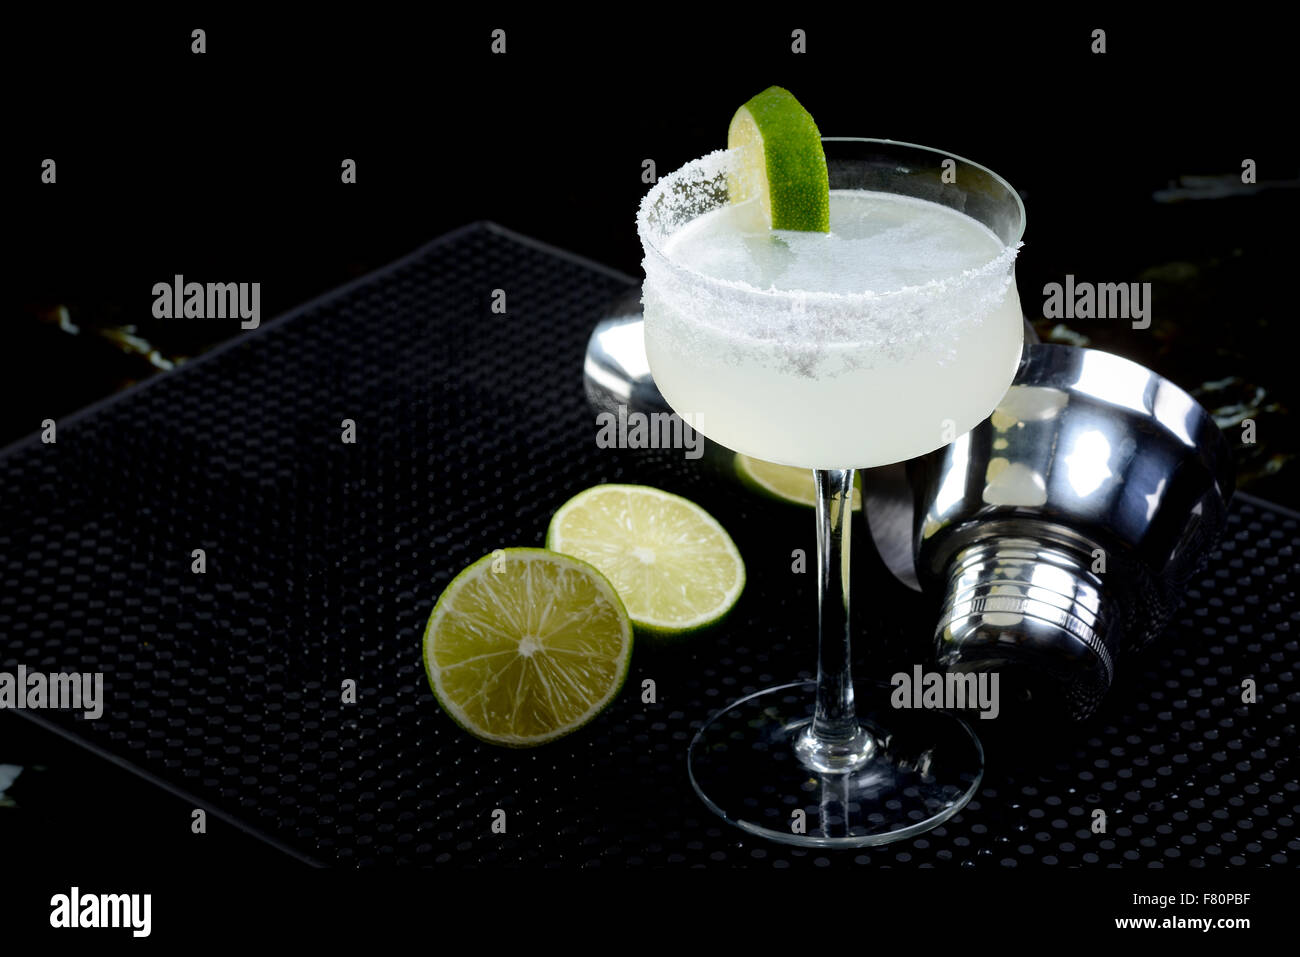 Margarita with shaker and lime - Stock Image